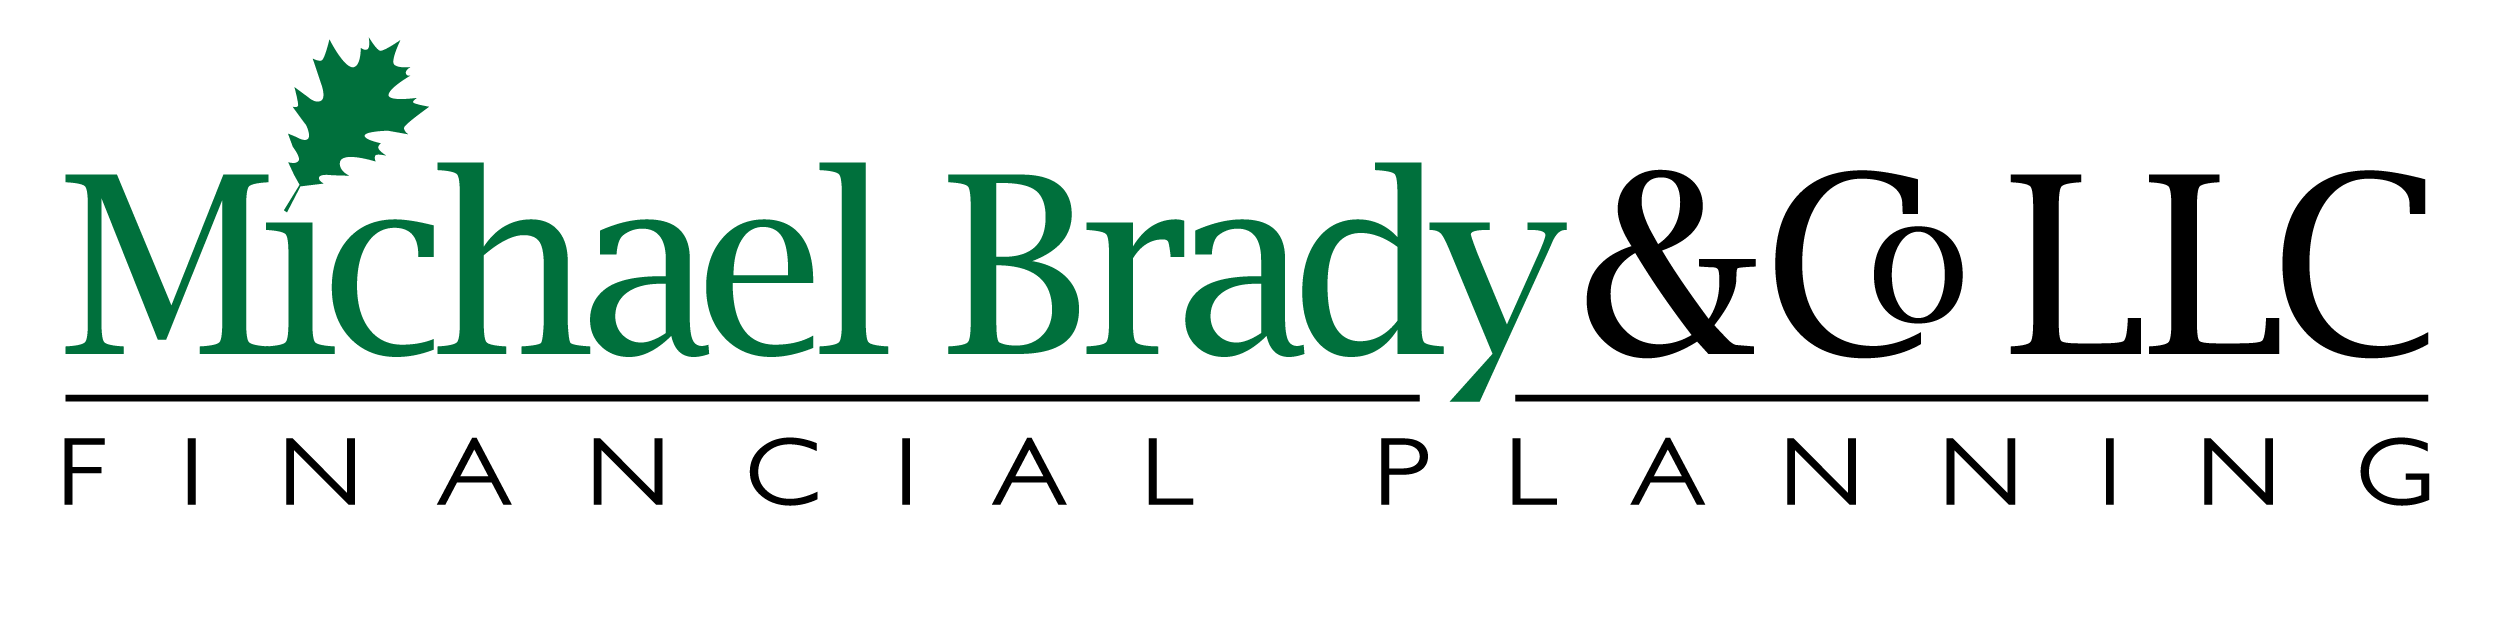 Michael Brady & Co LLC logo